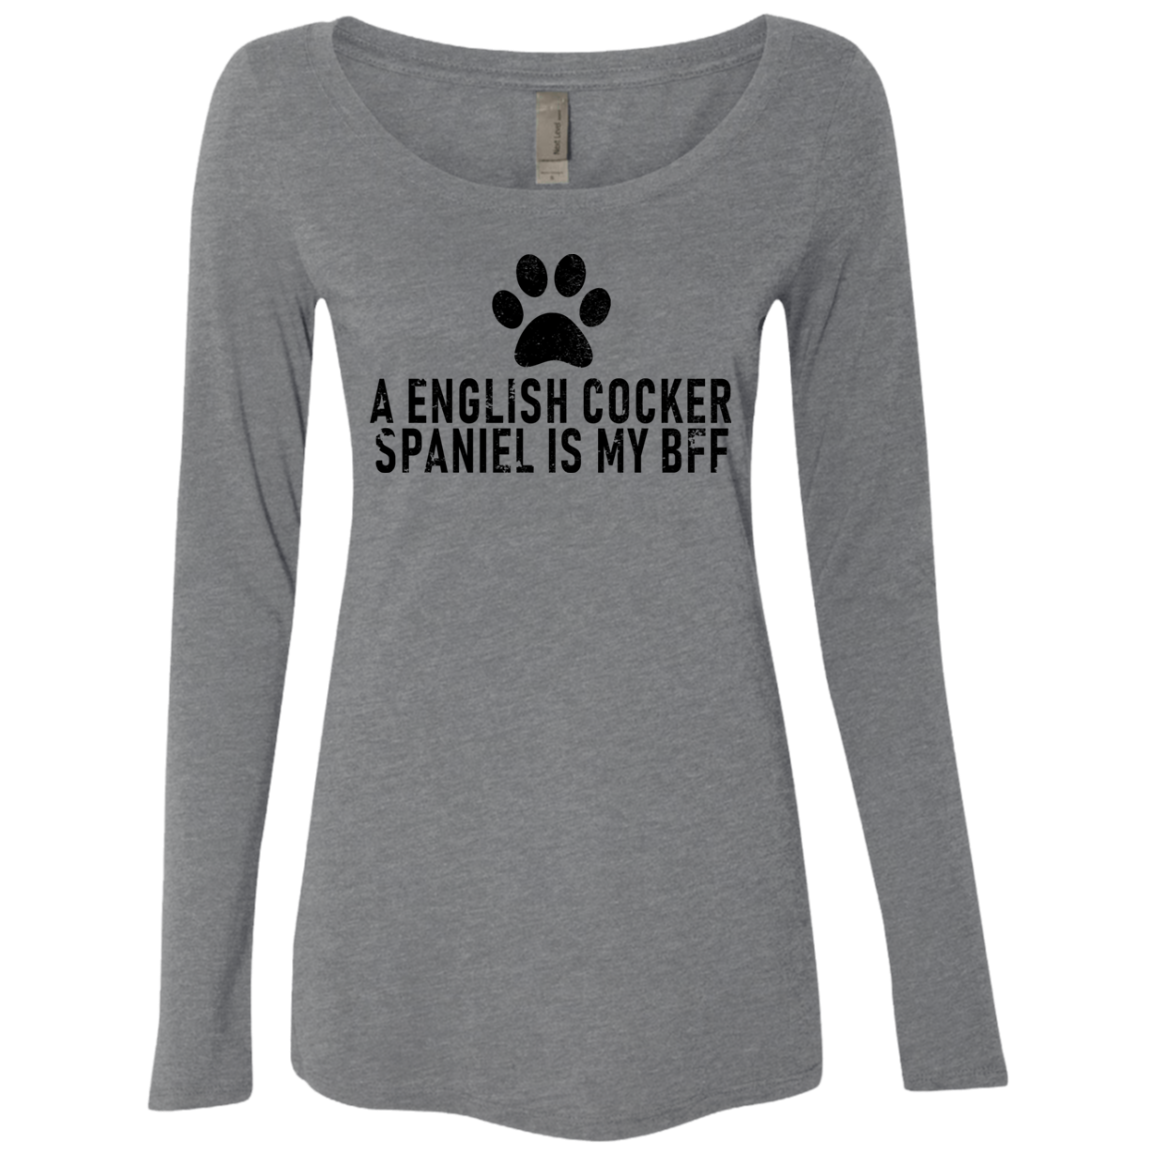 A English Cocker Spaniel Is My Bff Women's Long Sleeve Tee